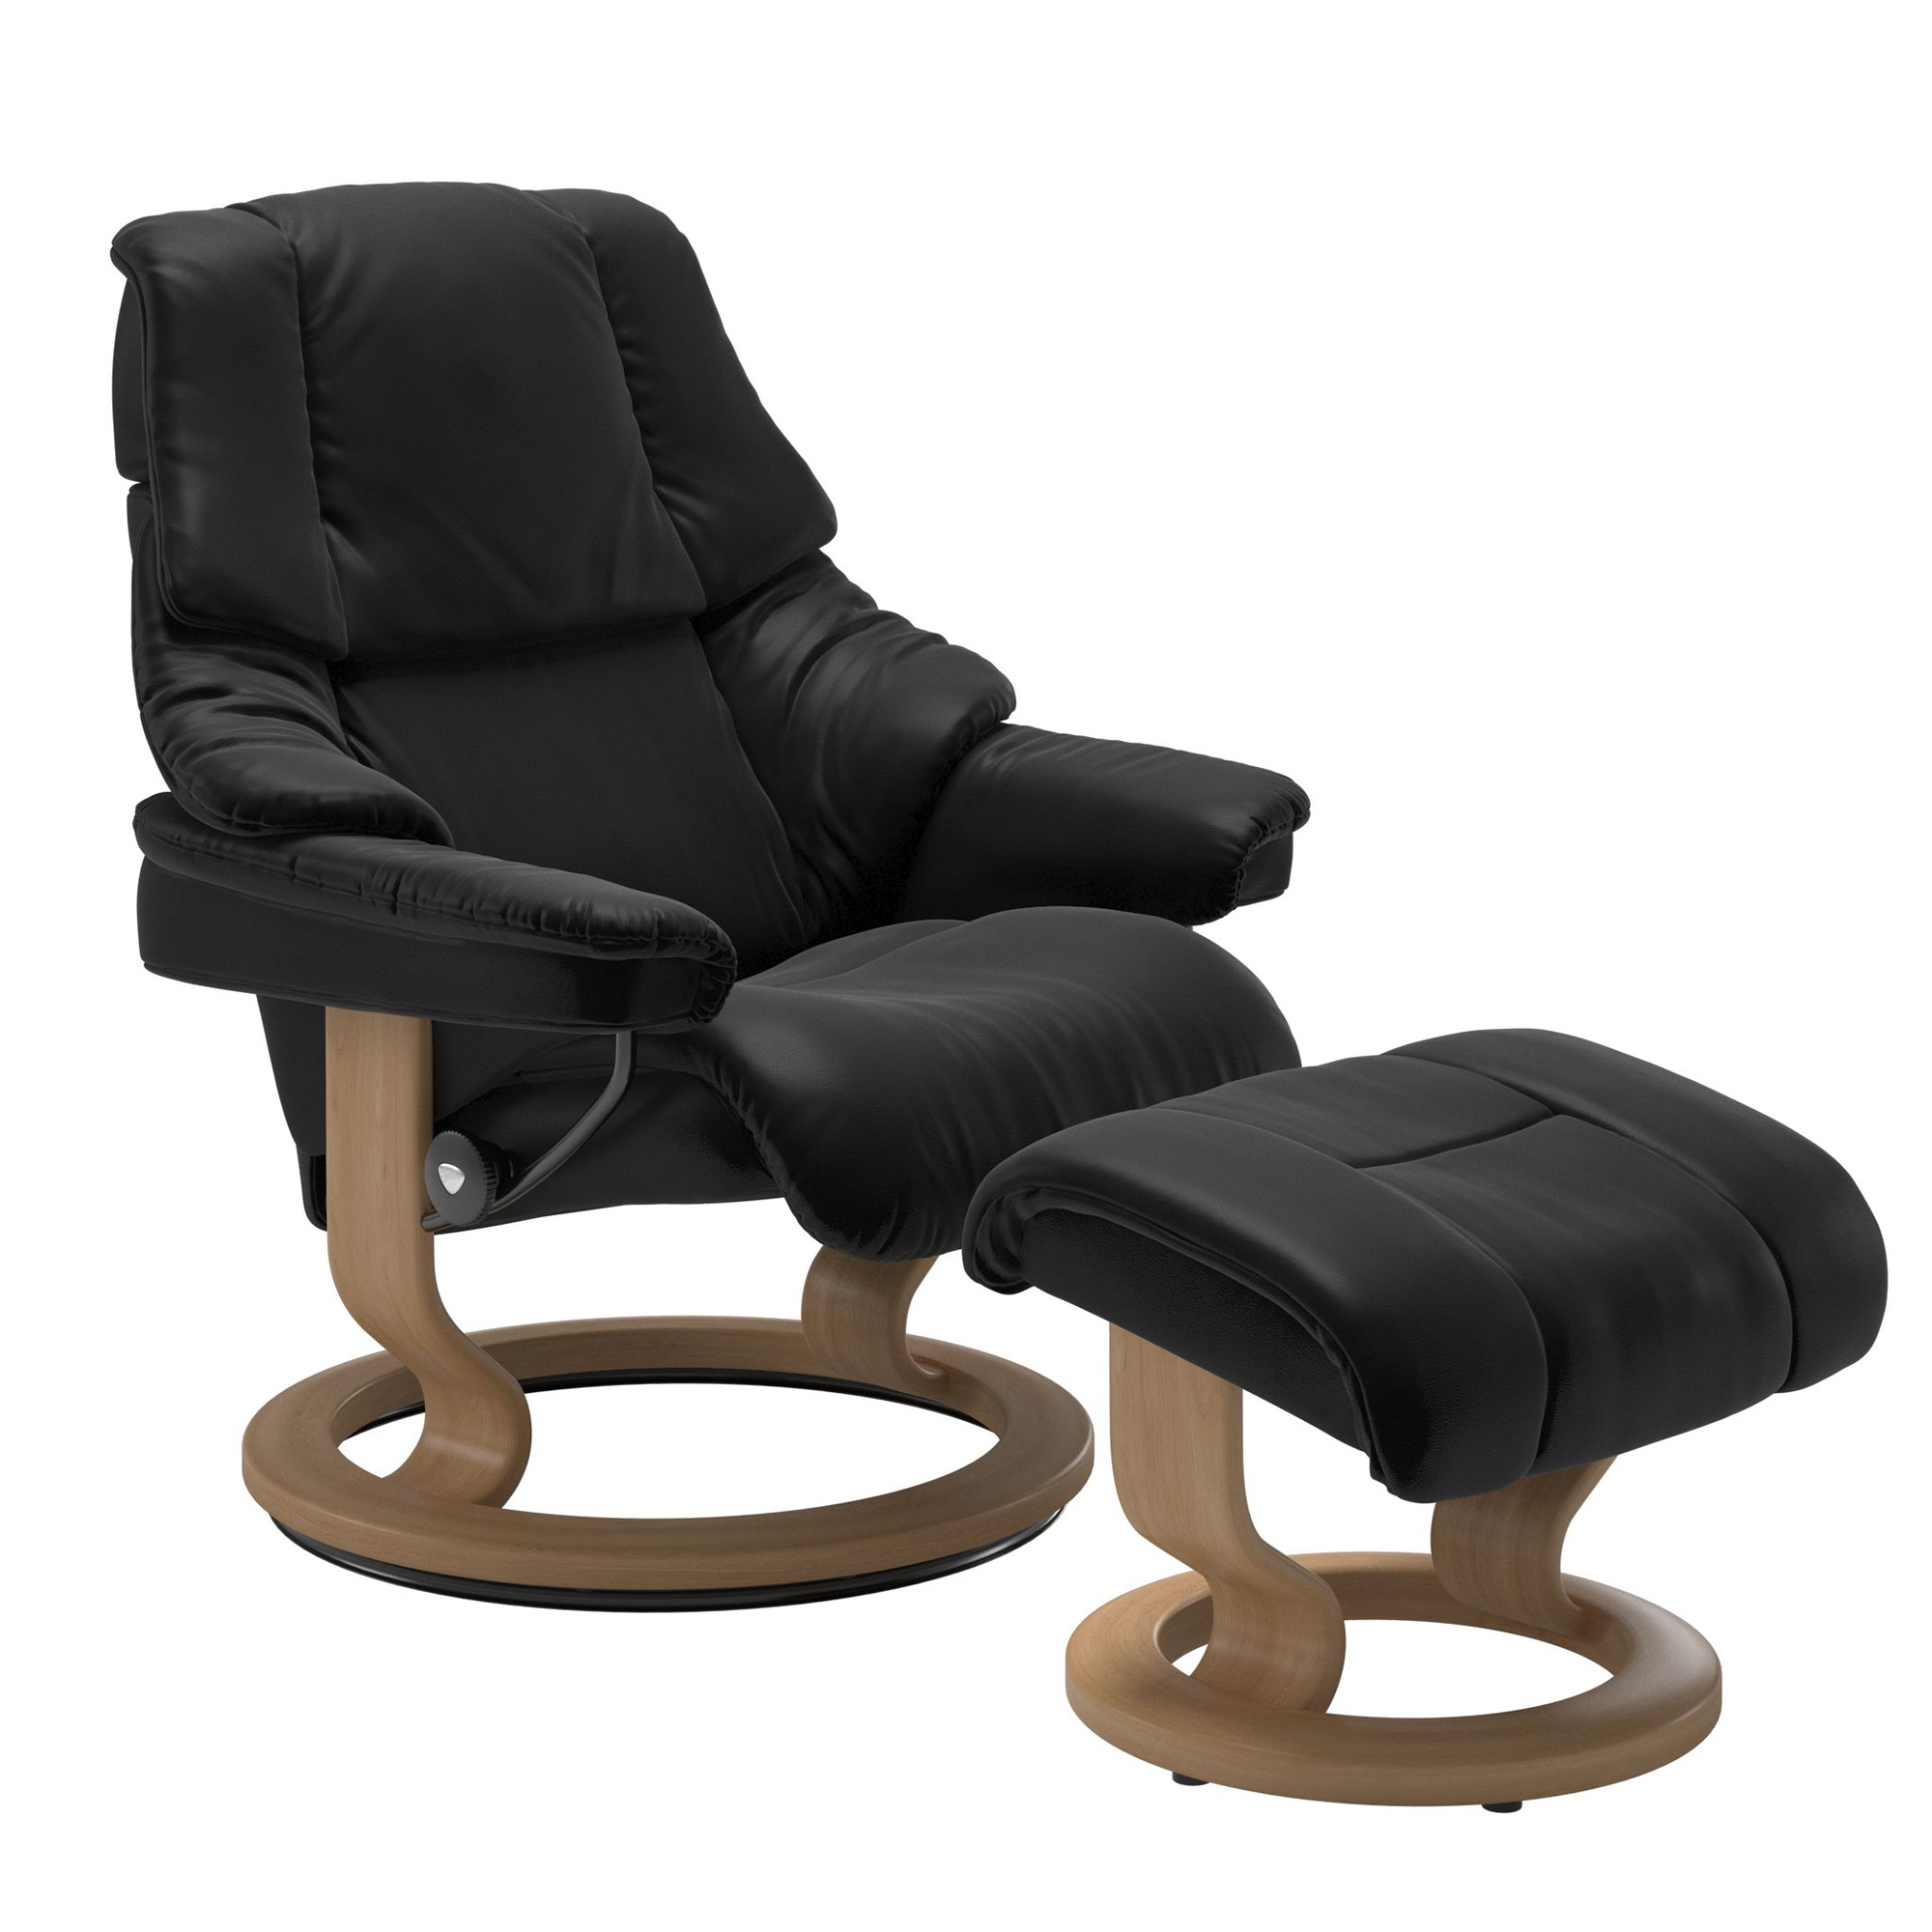 stressless vegas chair stool cookes furniture. Black Bedroom Furniture Sets. Home Design Ideas